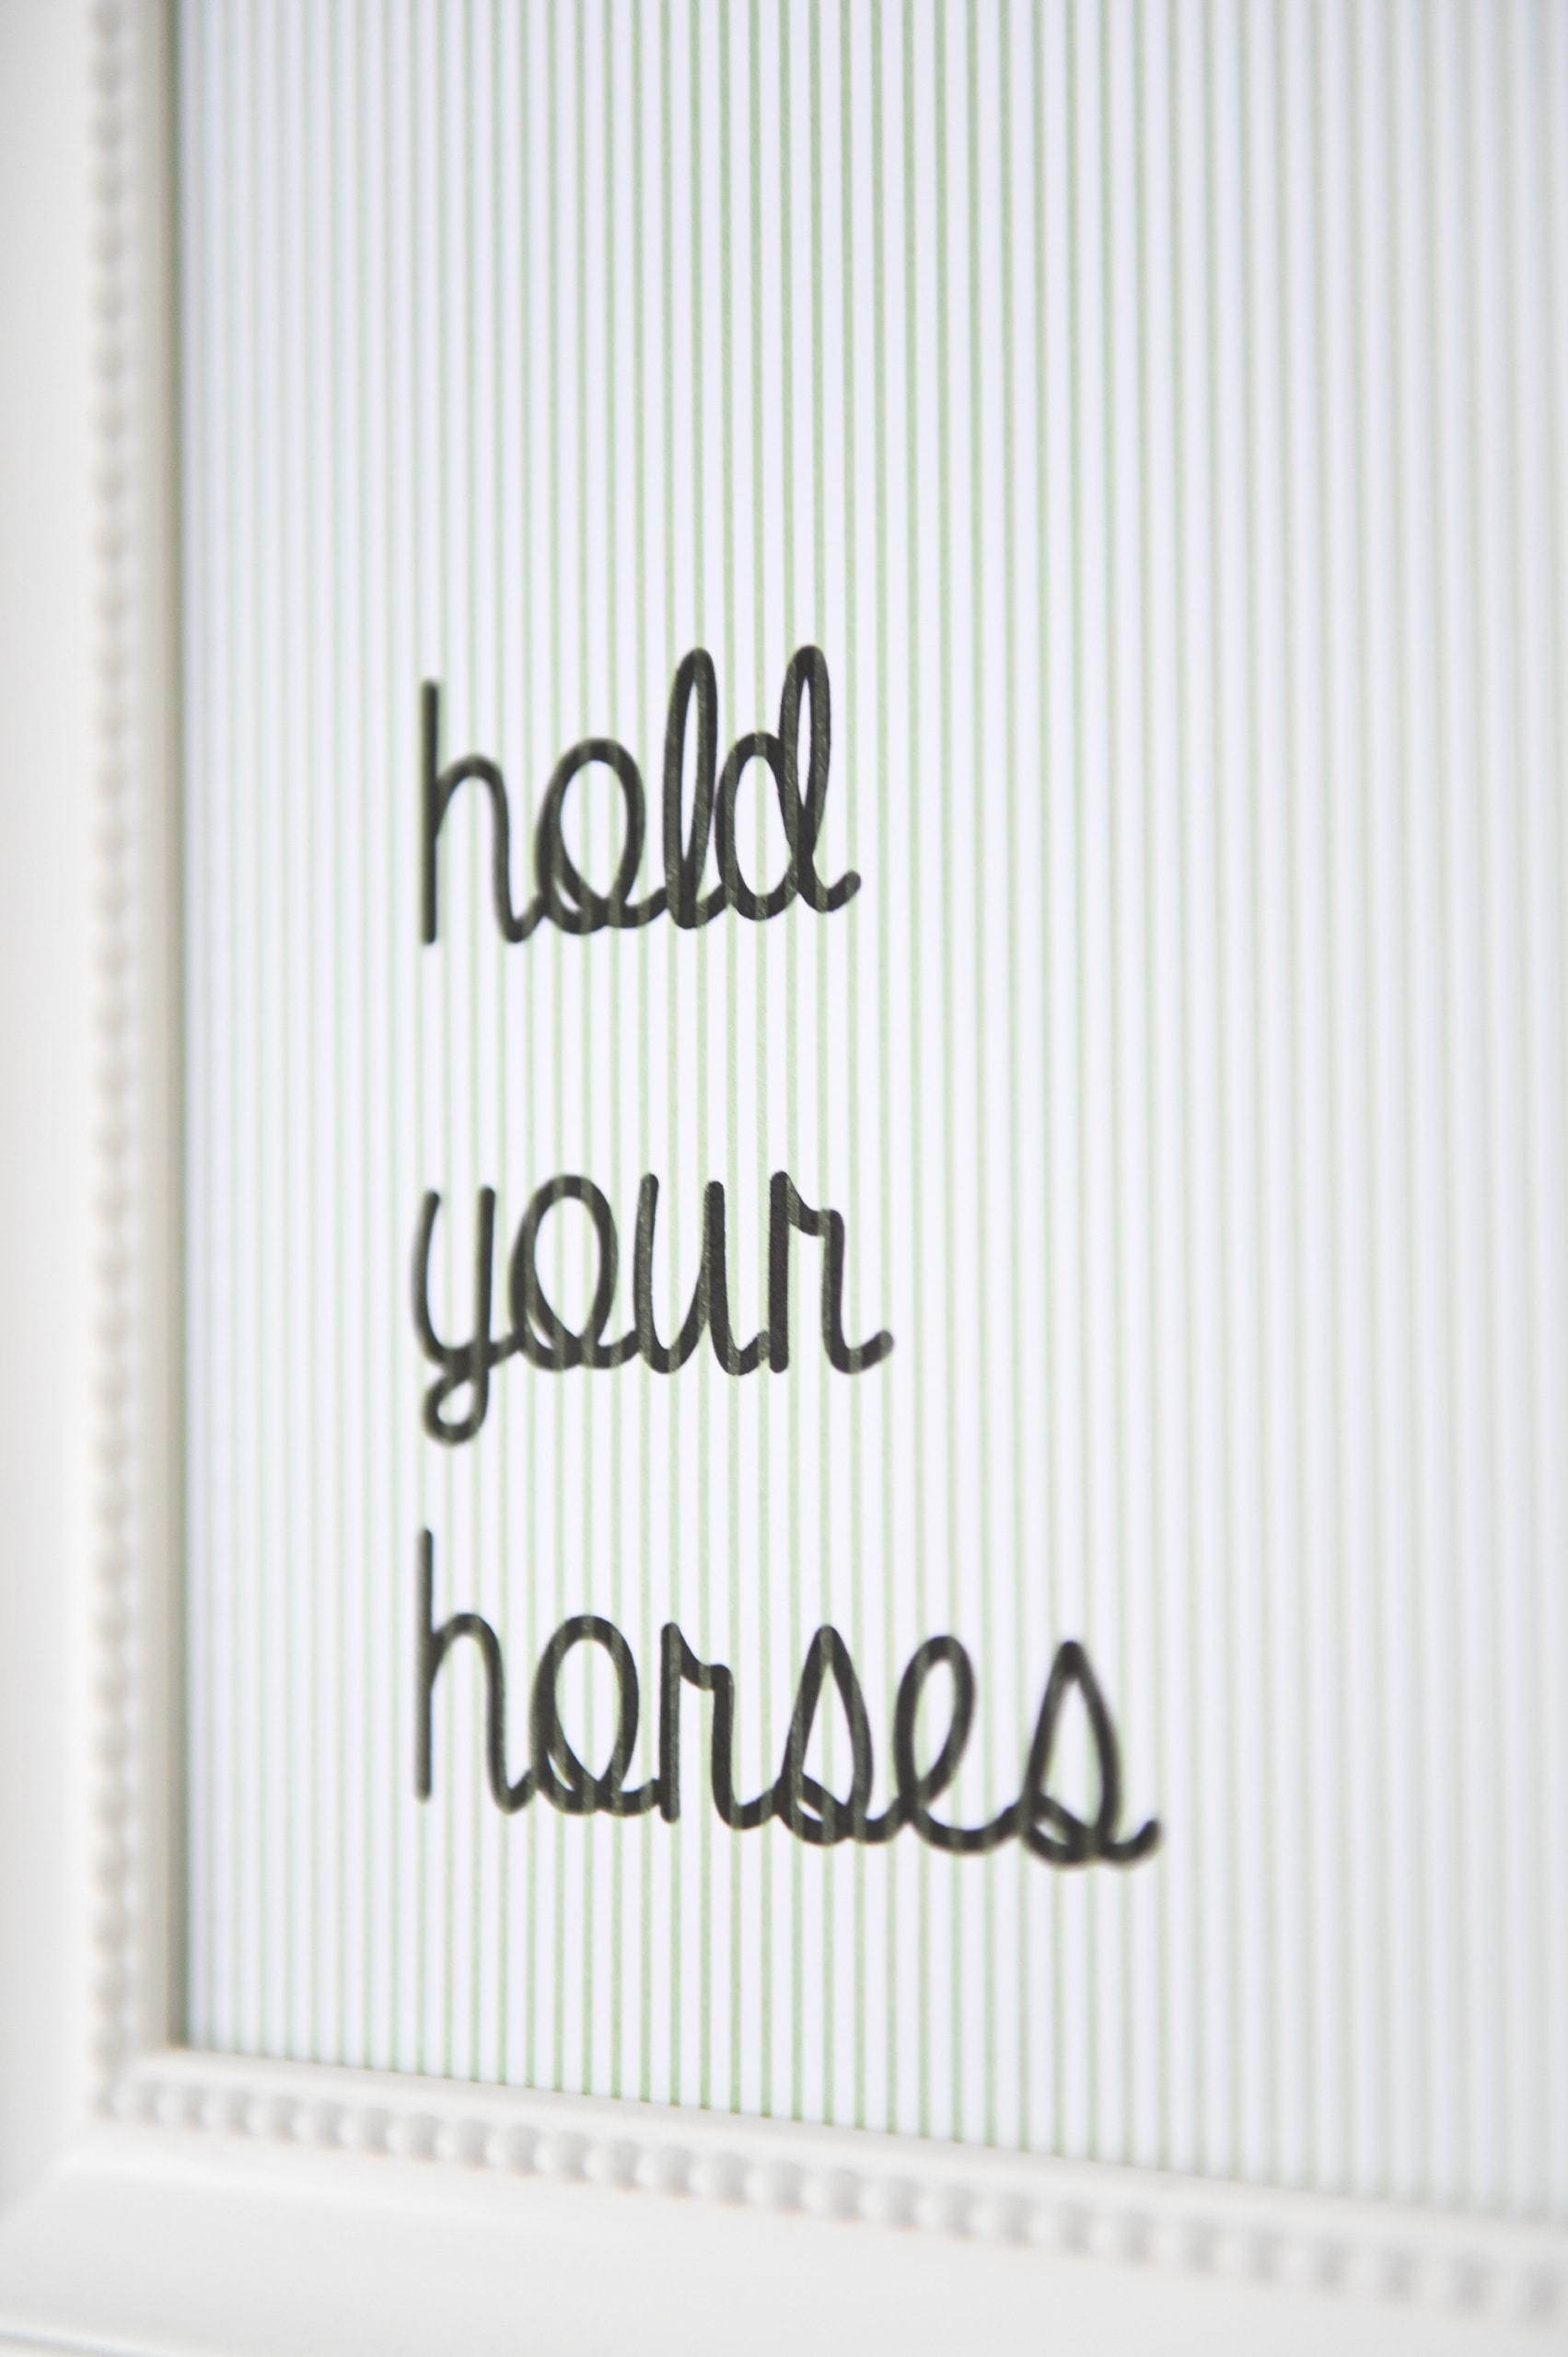 Hold your horses art print